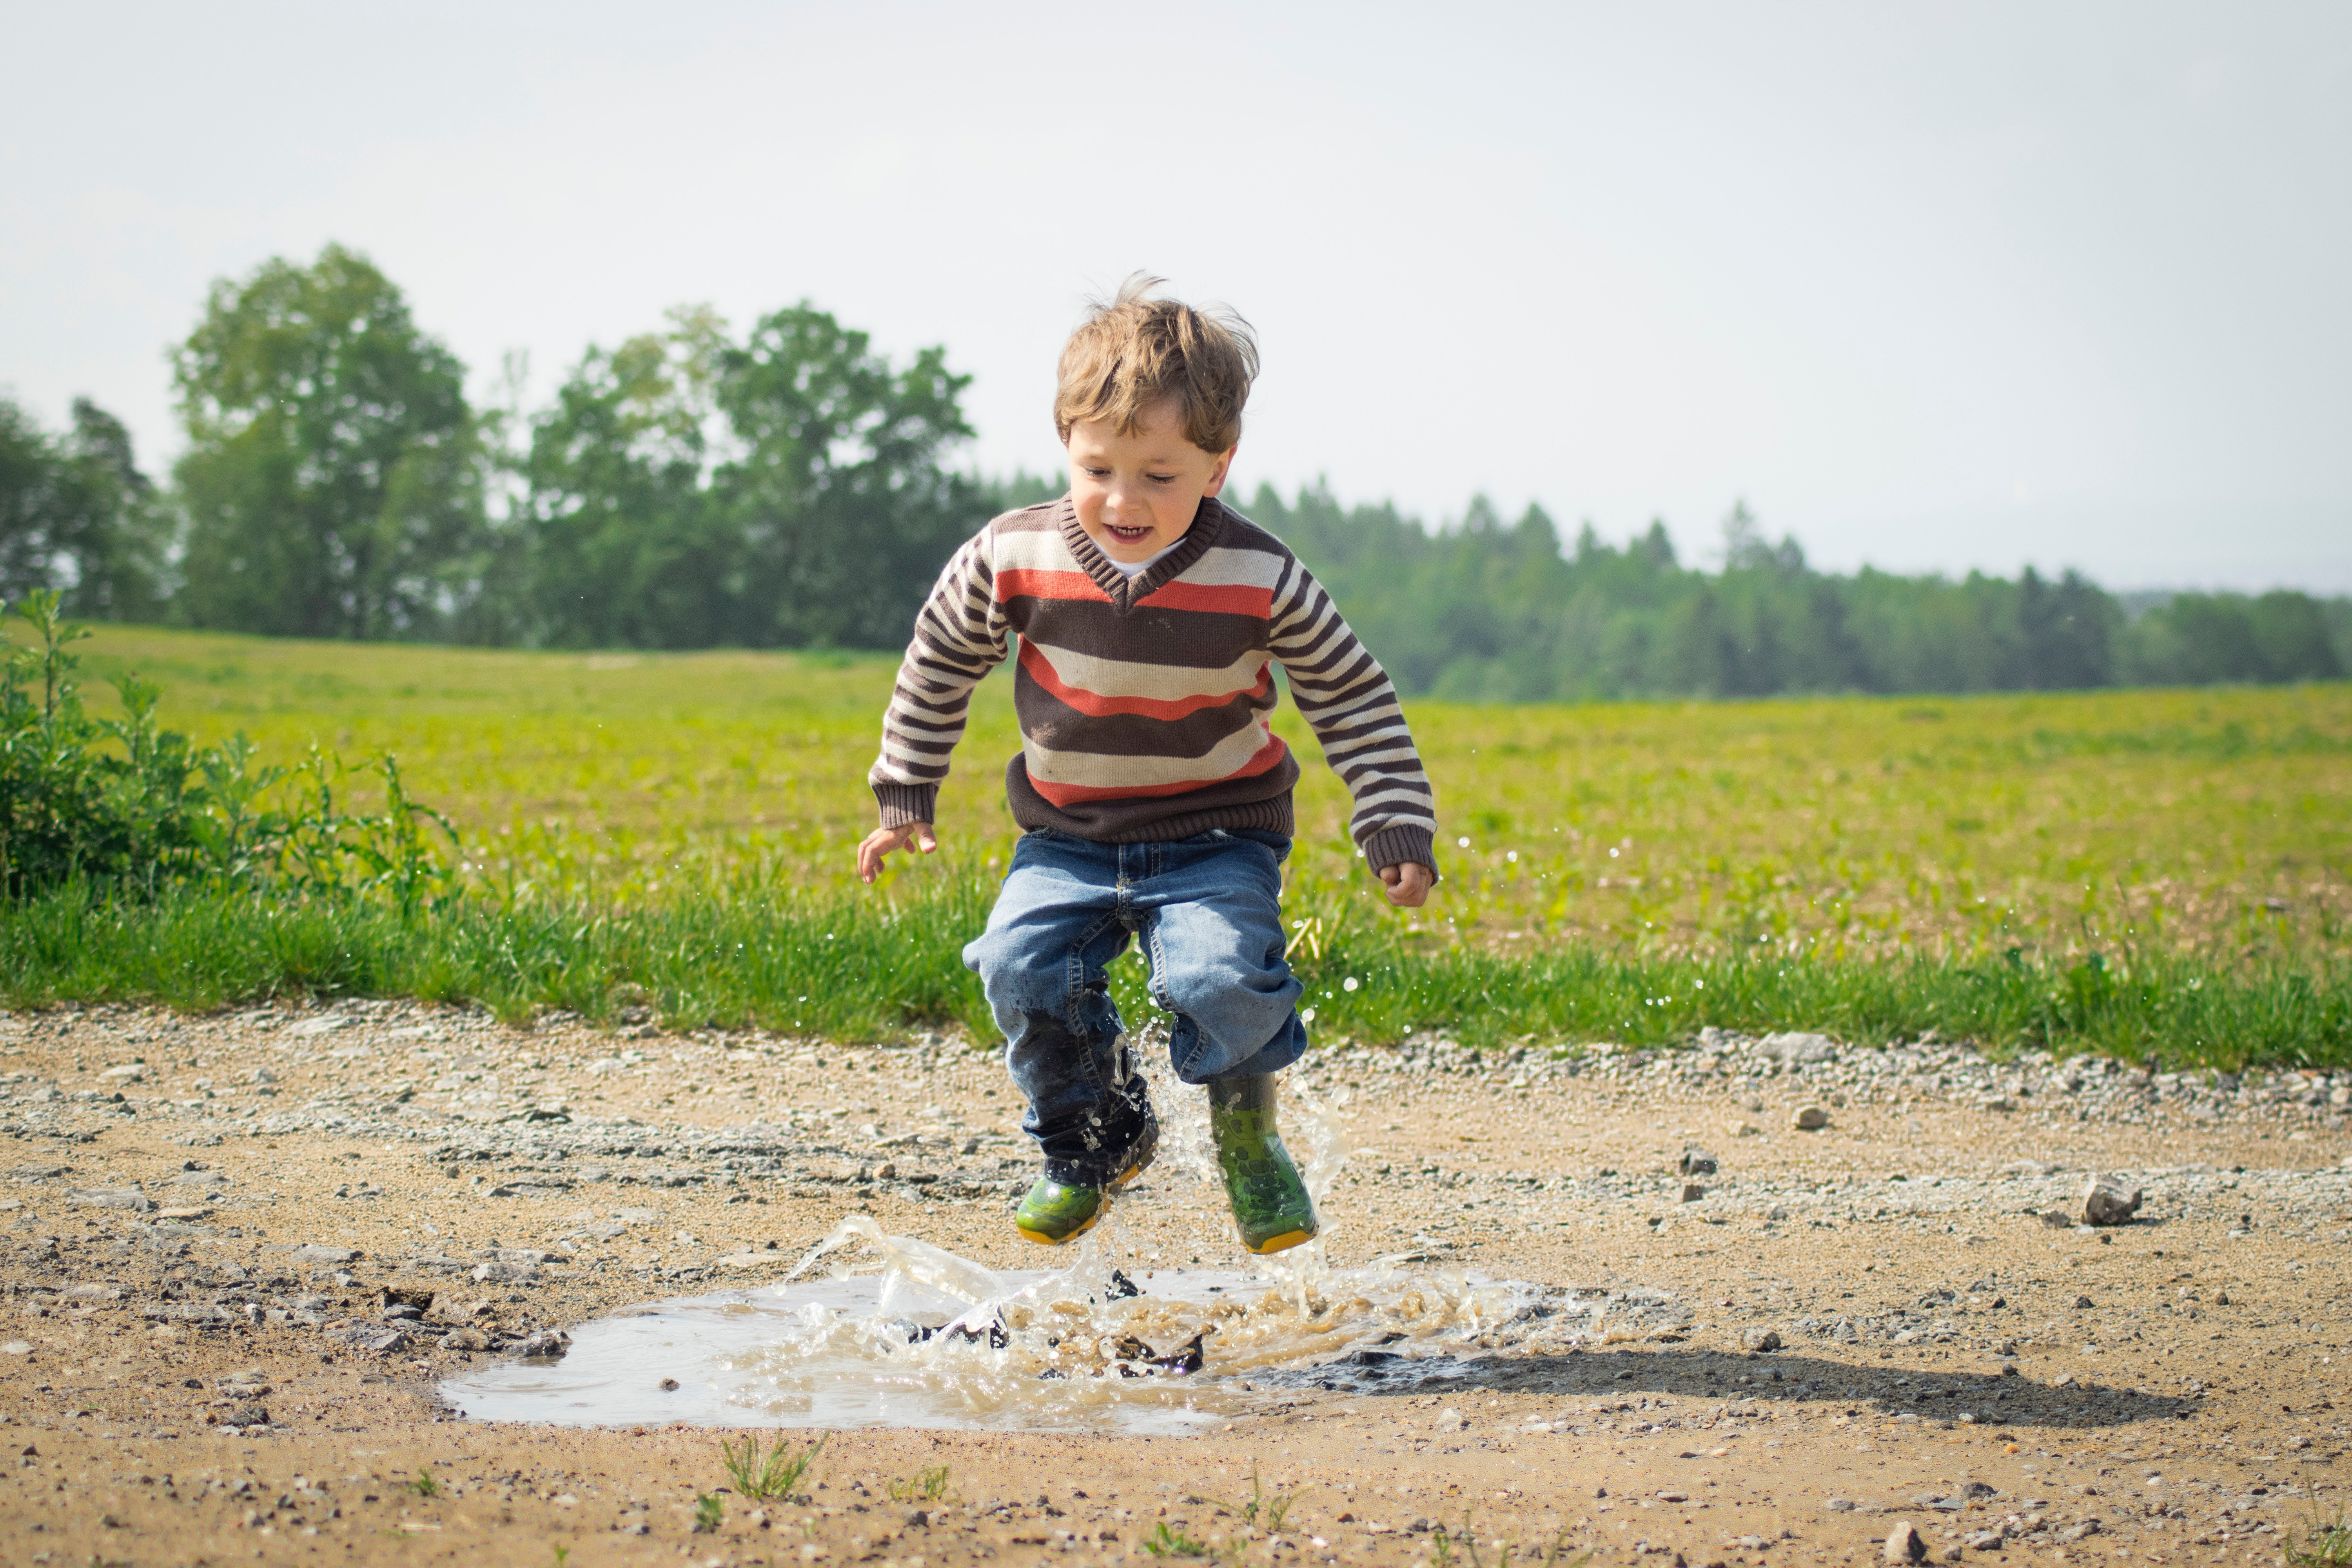 Young boy splashing in a puddle. | Source: Luna Lovegood/Pexels